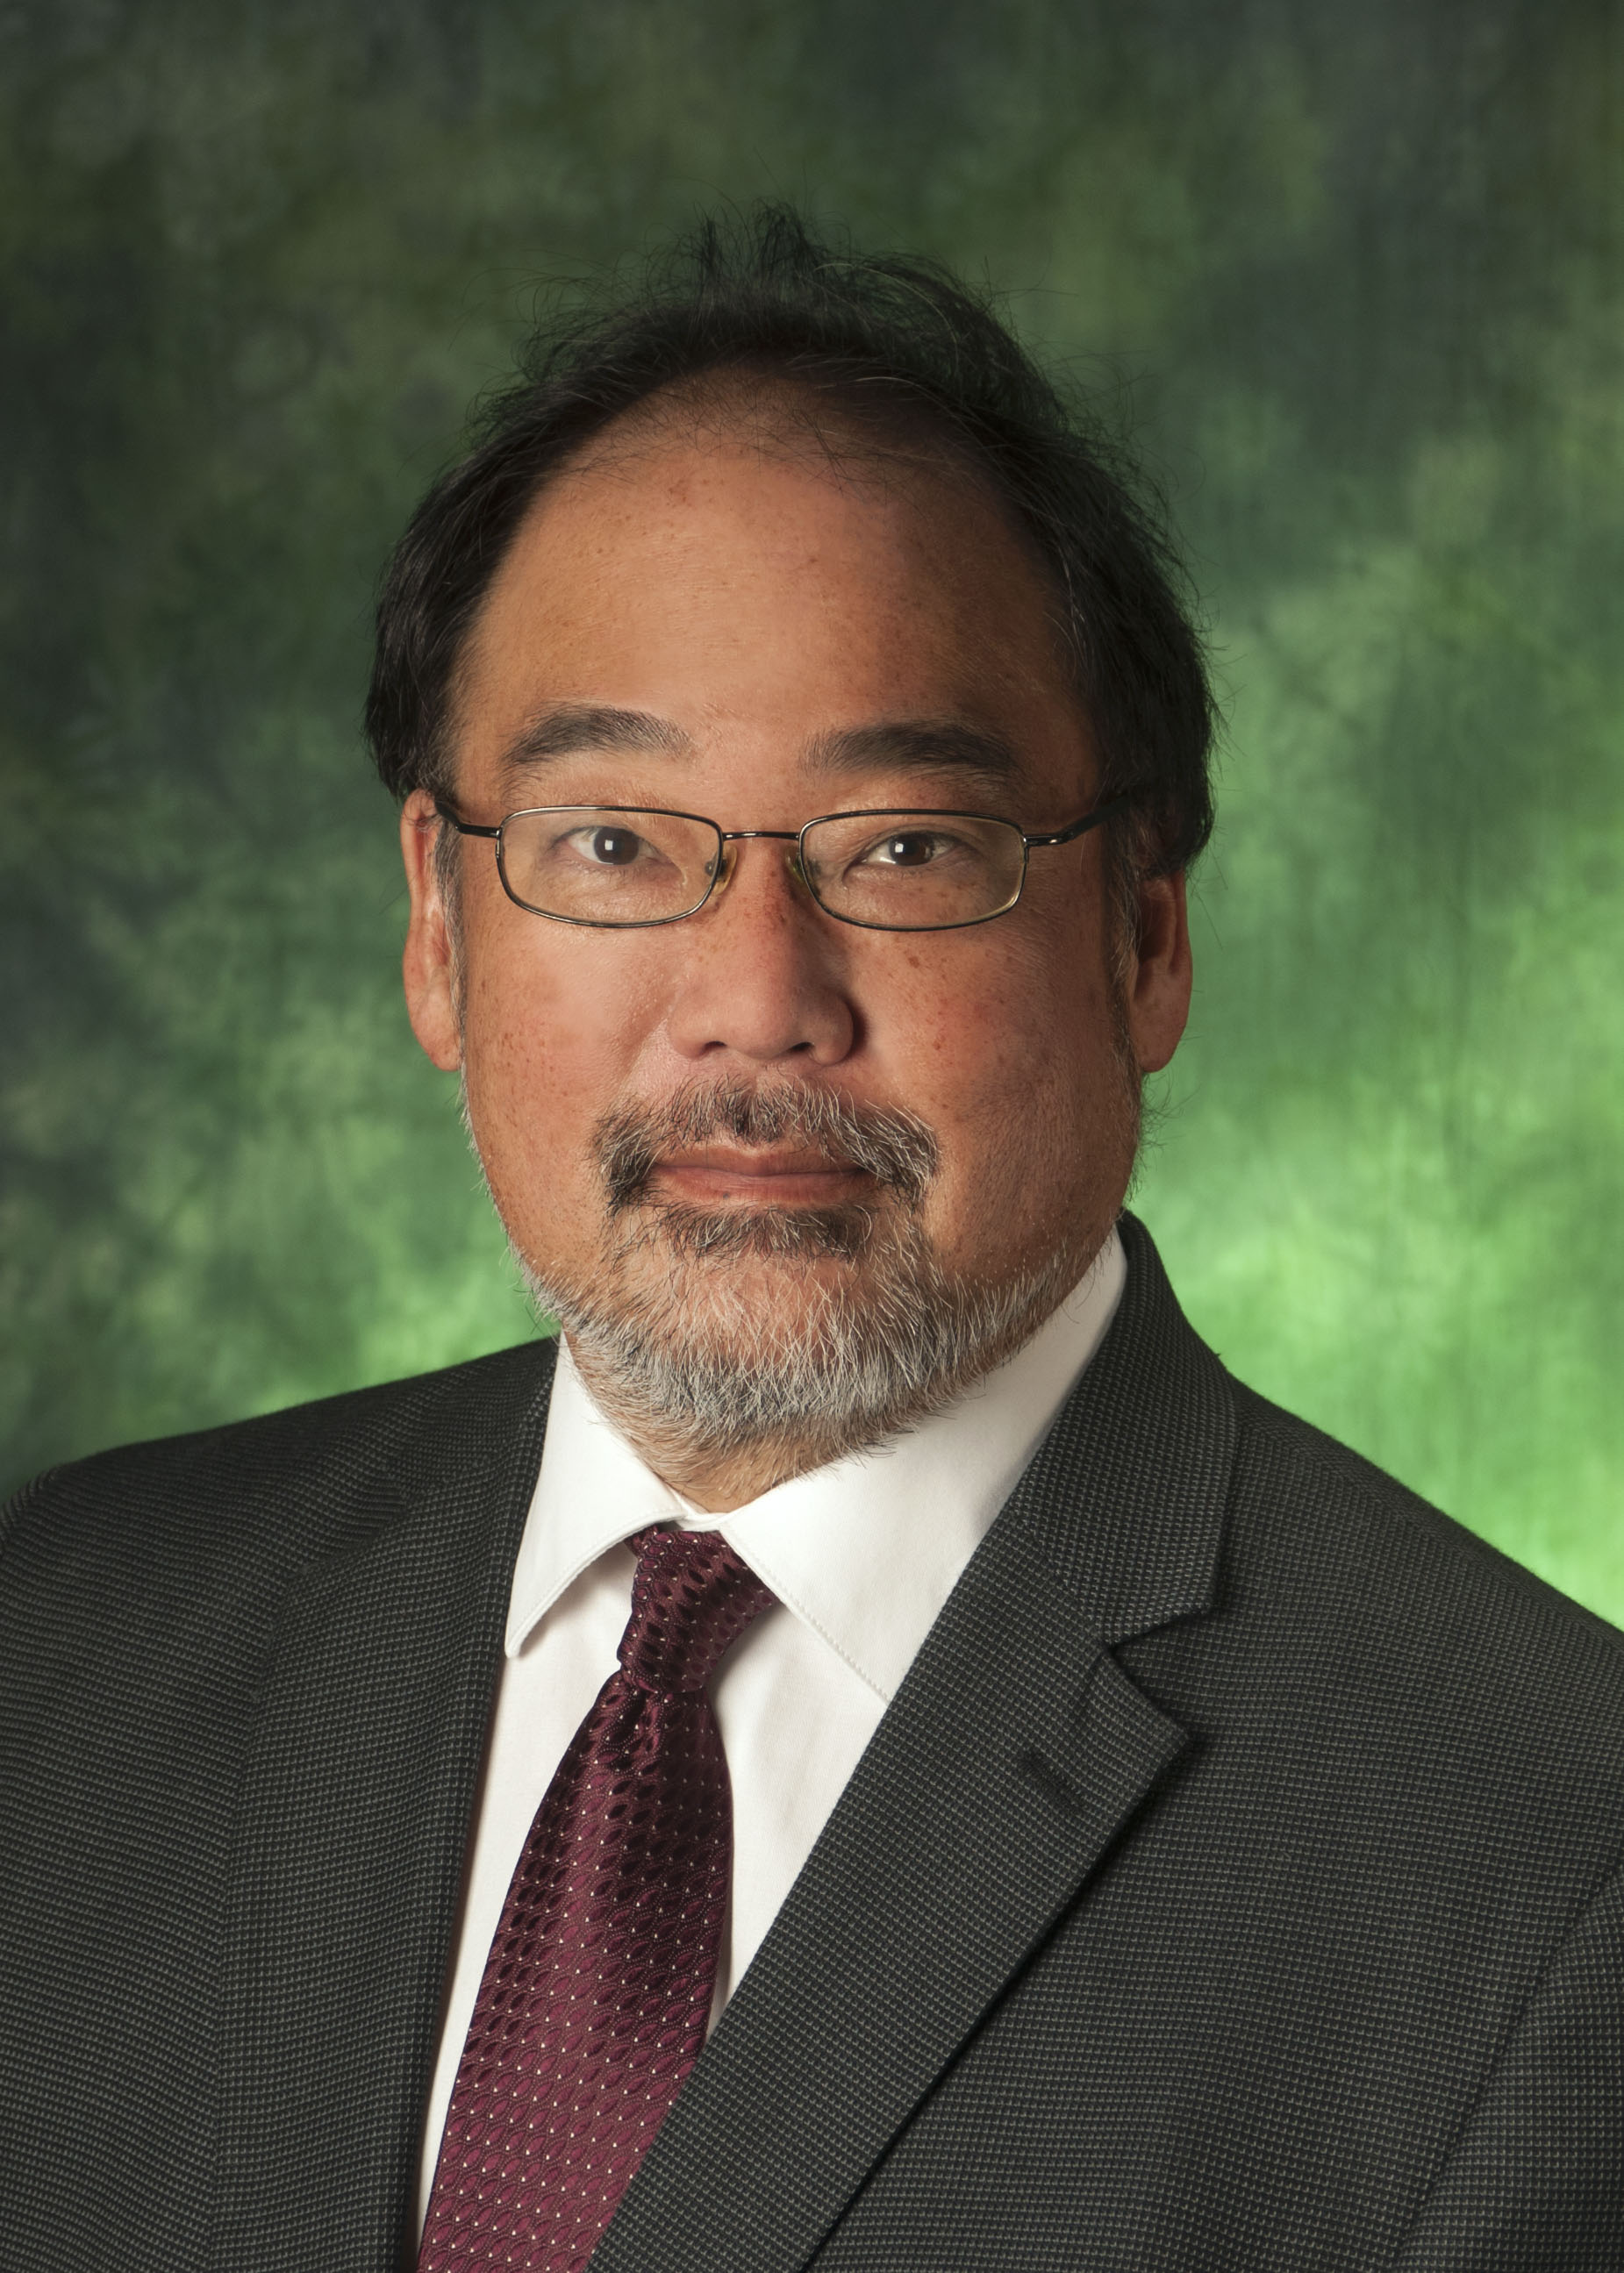 John Ishiyama, University Distinguished Research Professor of political science at the University of North Texas, has earned the highest career award for service to the discipline presented by the American Political Science Association.